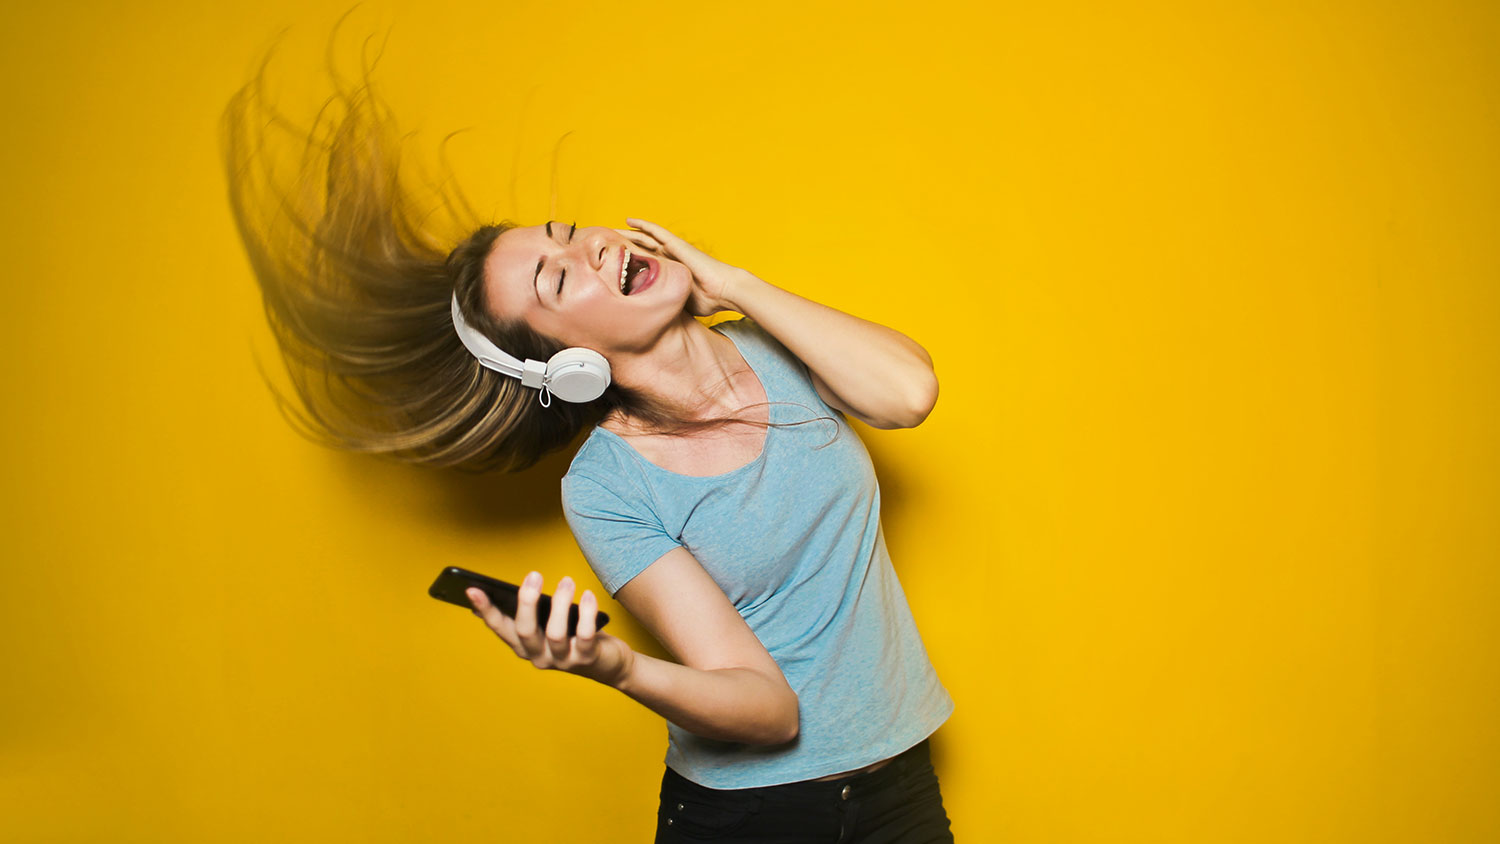 Dancing with Digital Marketing Campaigns